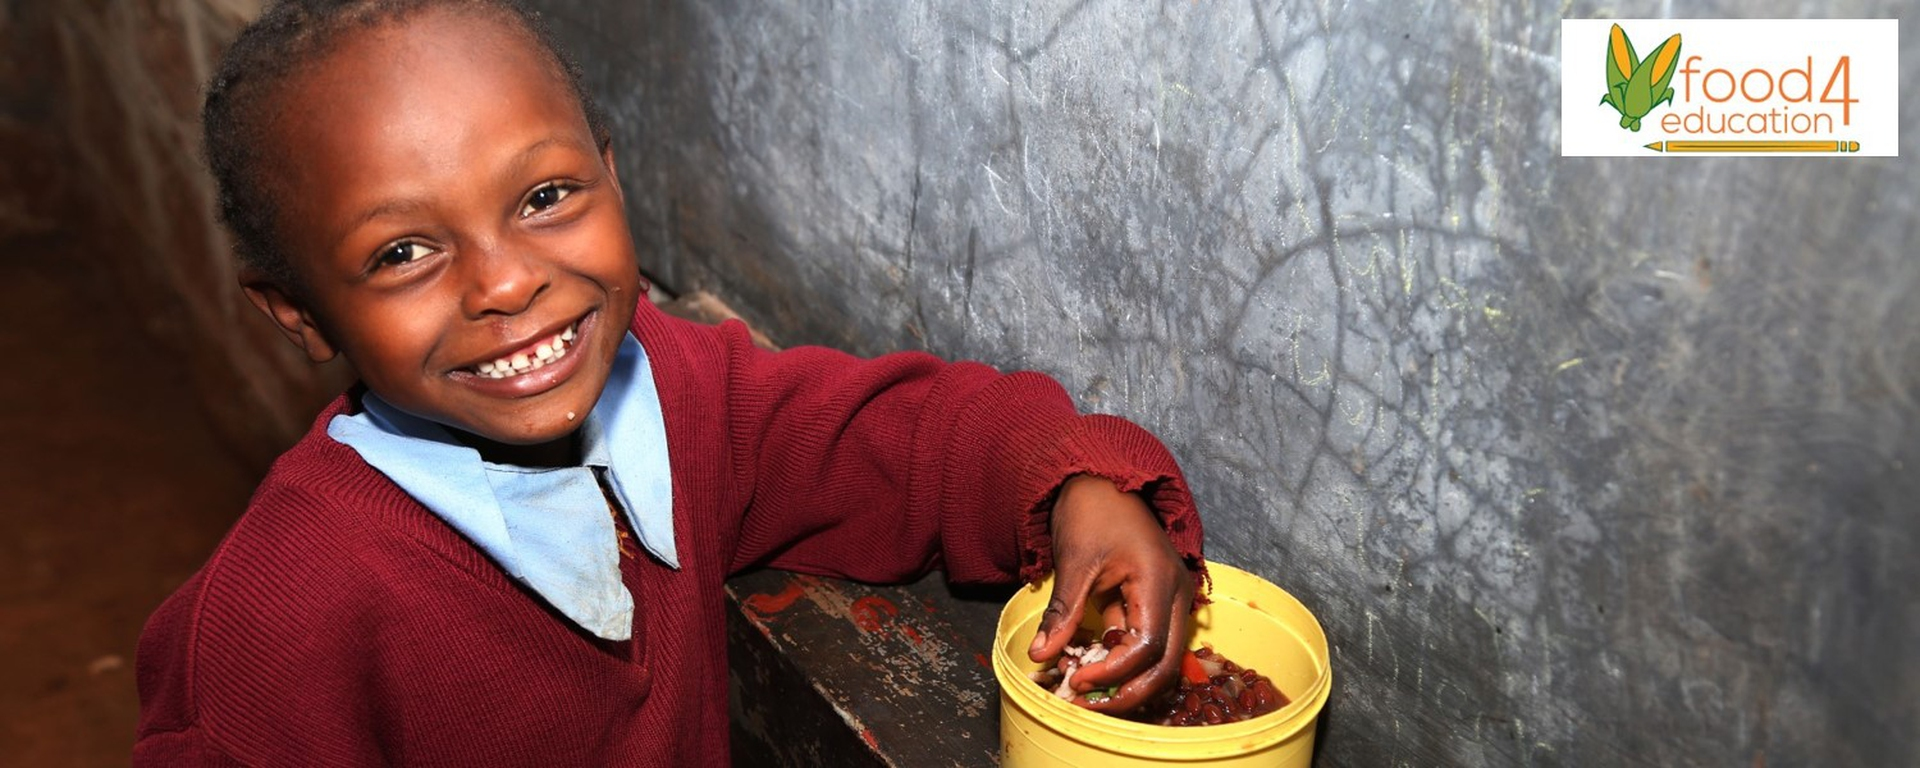 Food for Education - Head of Growth Operations Movemeback African opportunity cover image